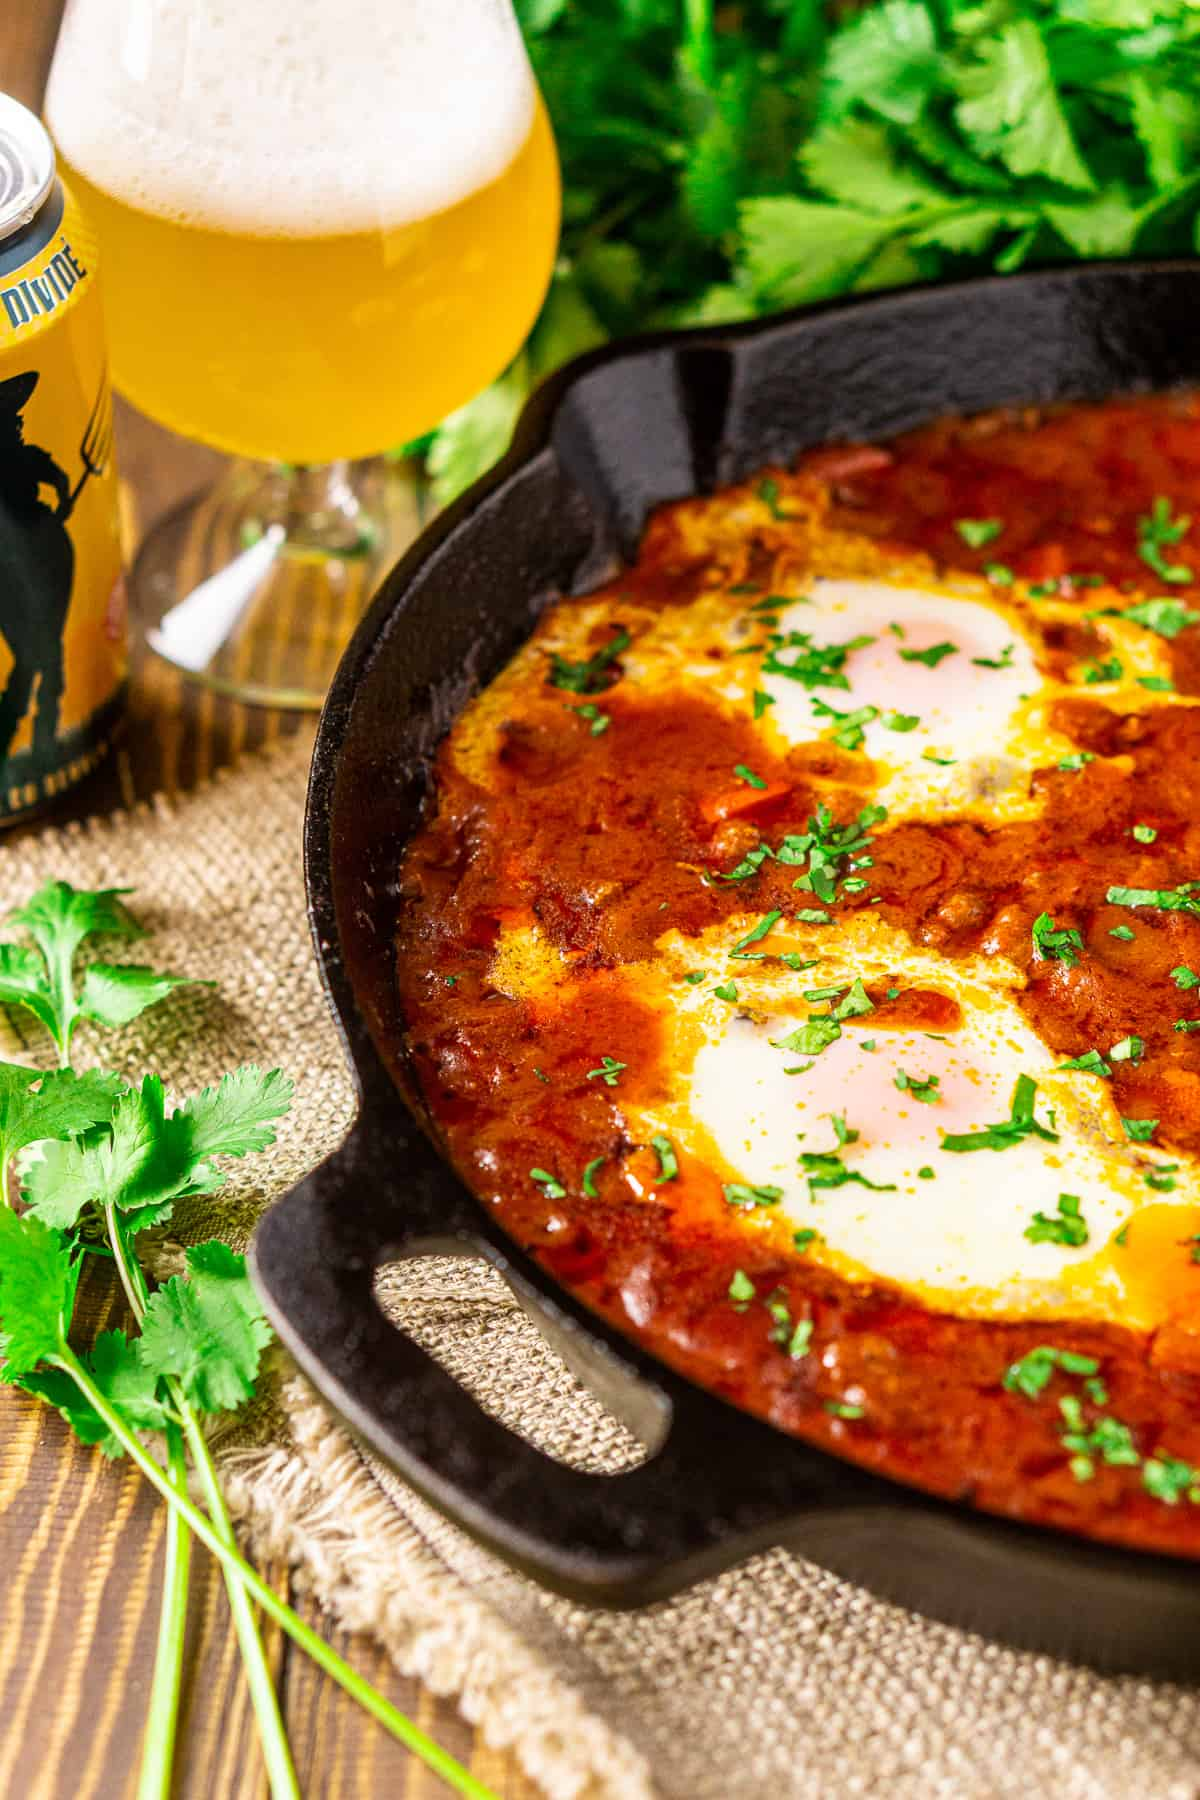 The Lamb Shakshuka with tomato-beer sauce on a wooden board with a saison behind it.